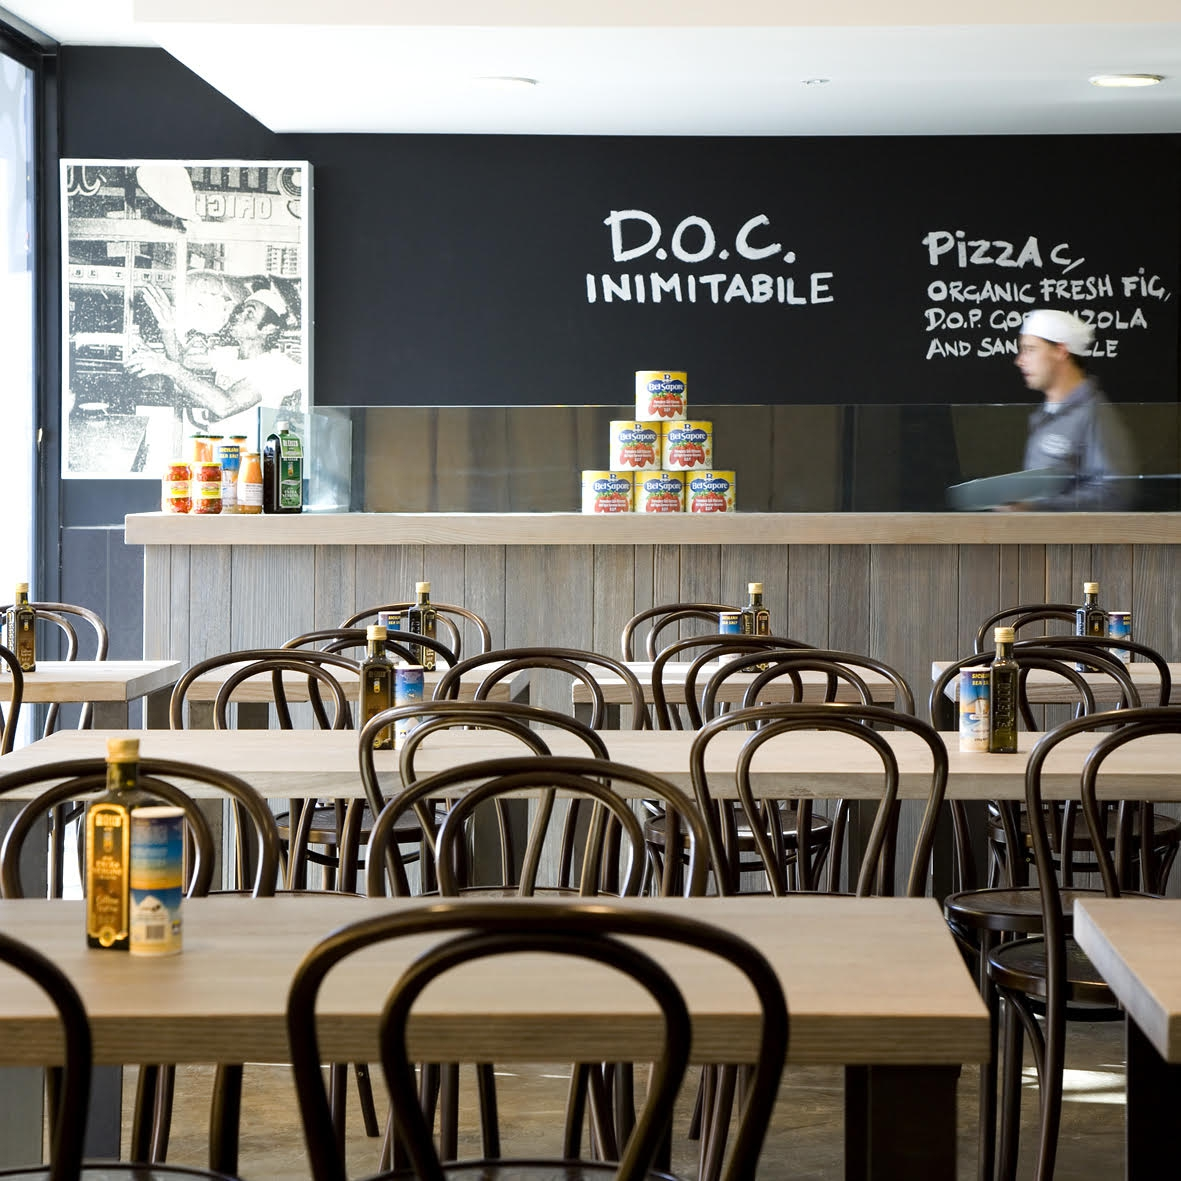 DOC PIZZA & MOZZARELLA BAR